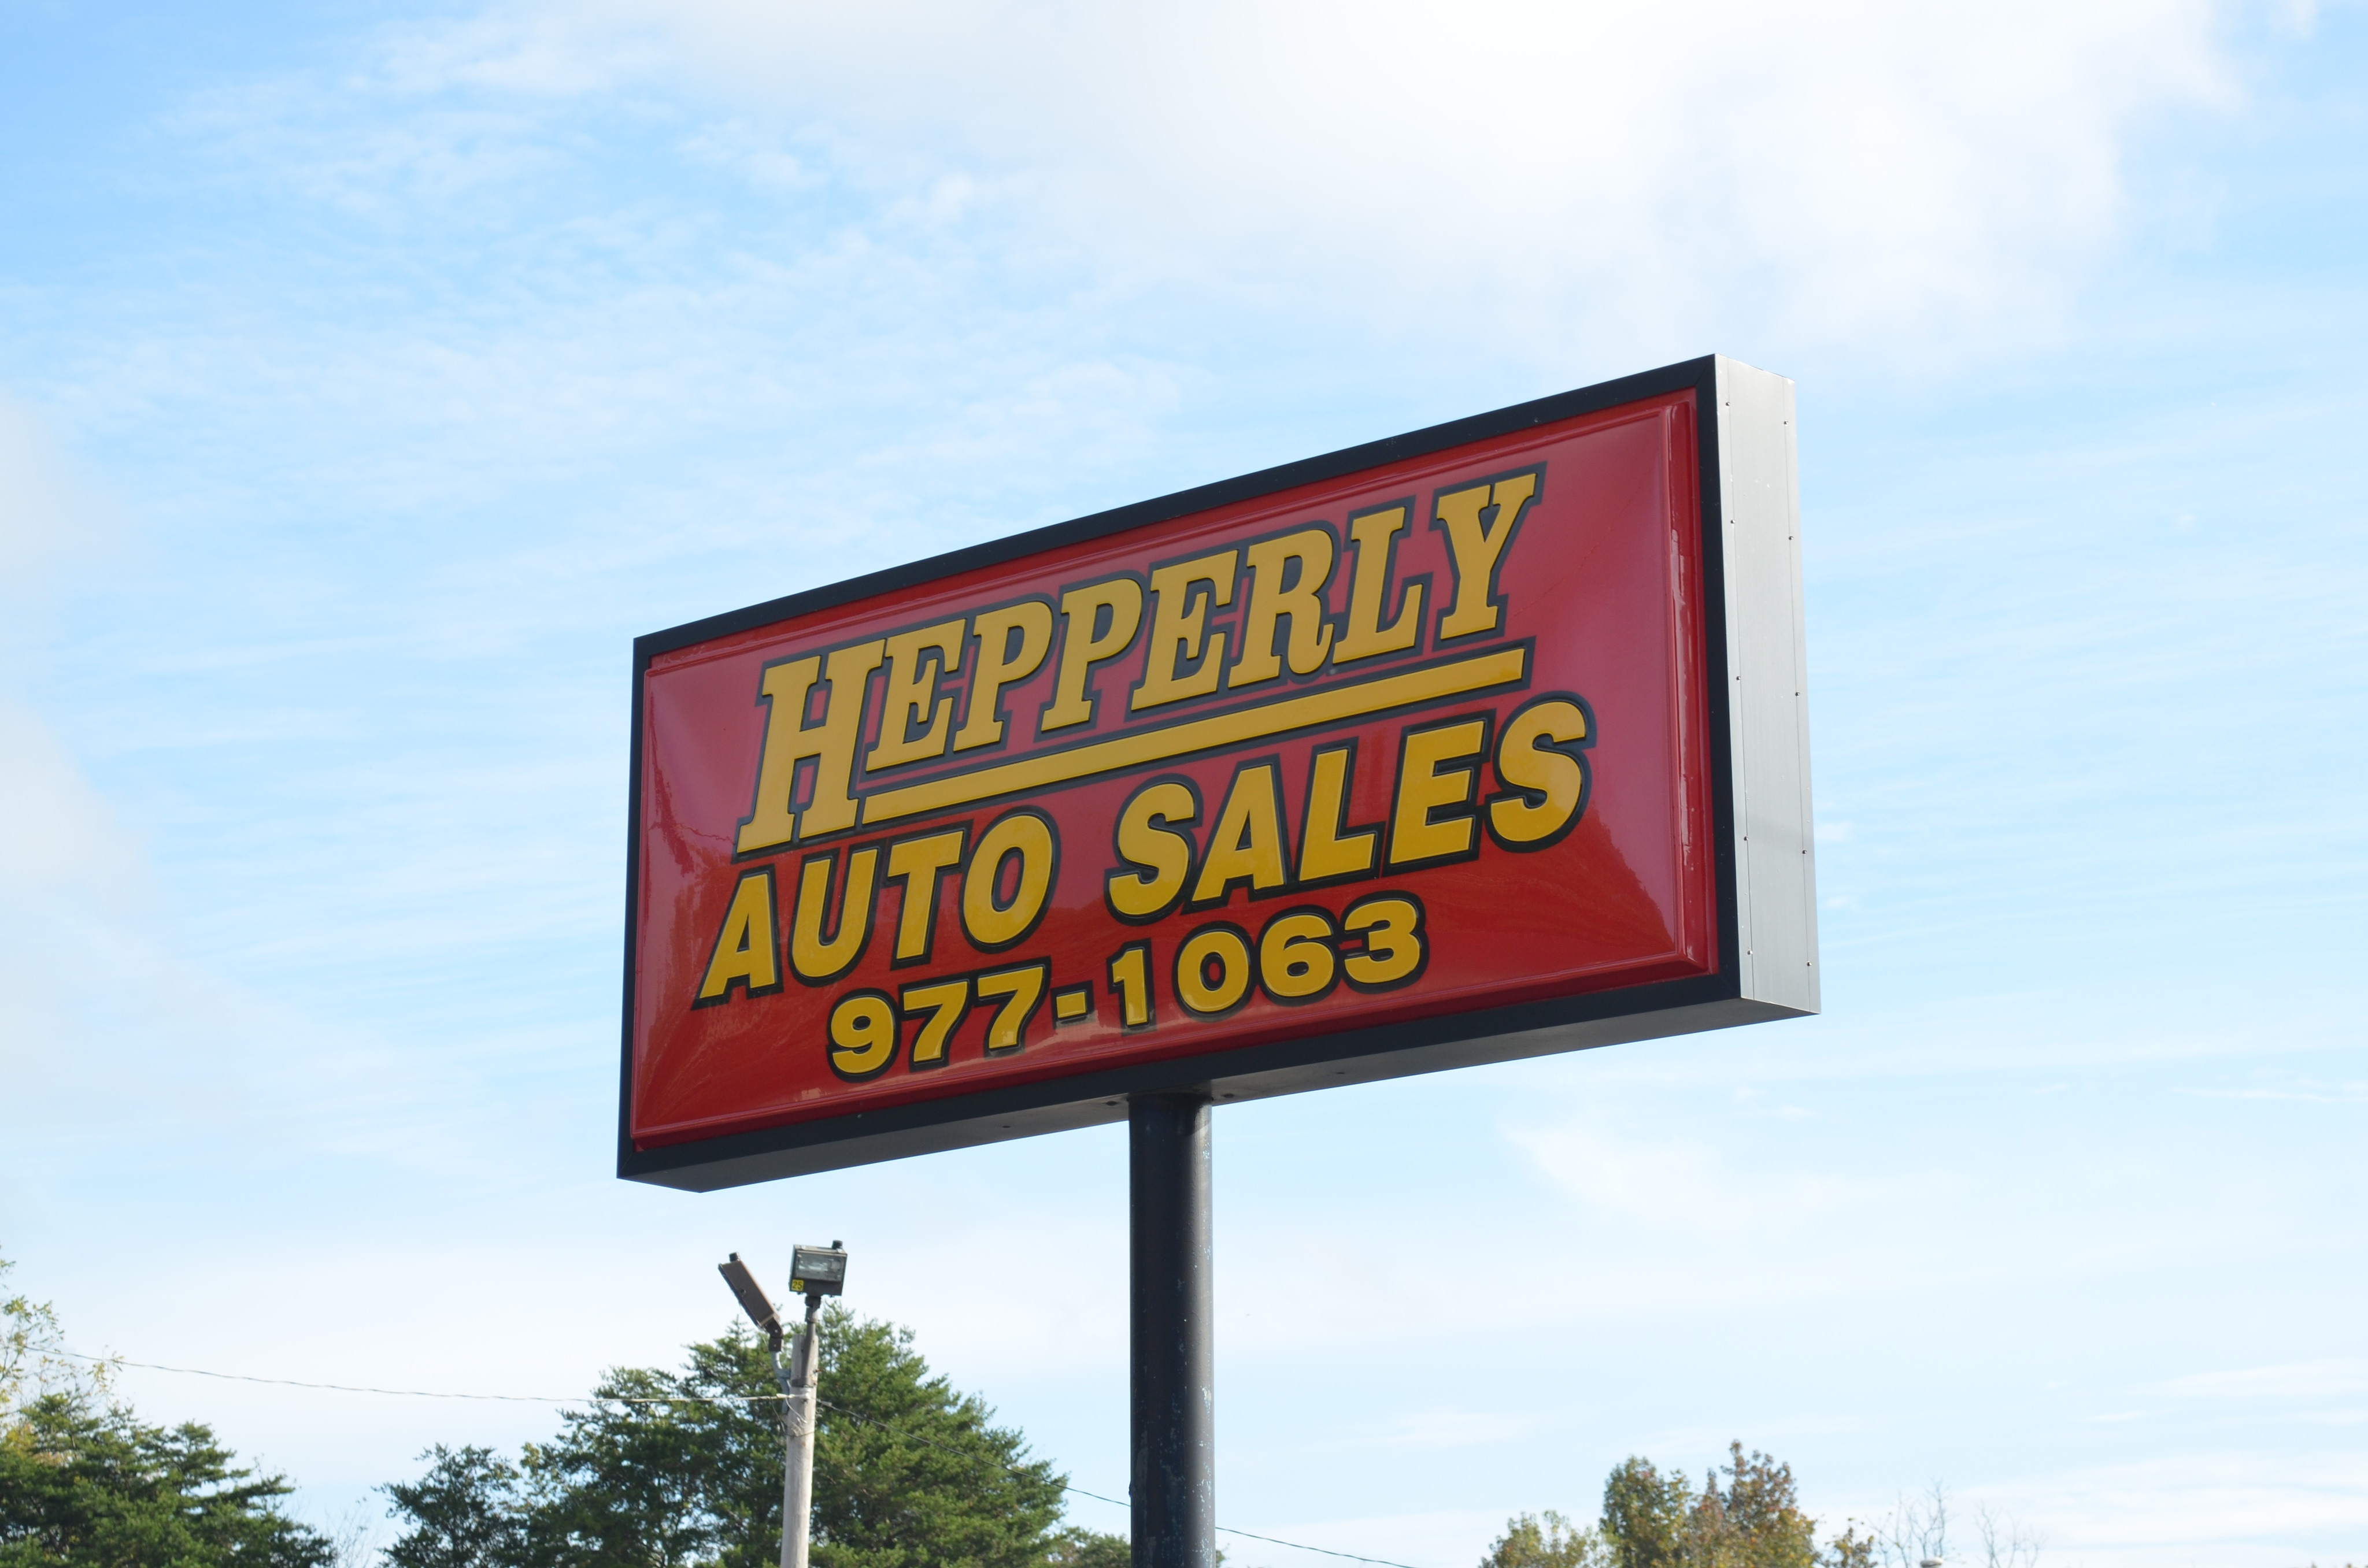 About hepperly auto sales maryville tn